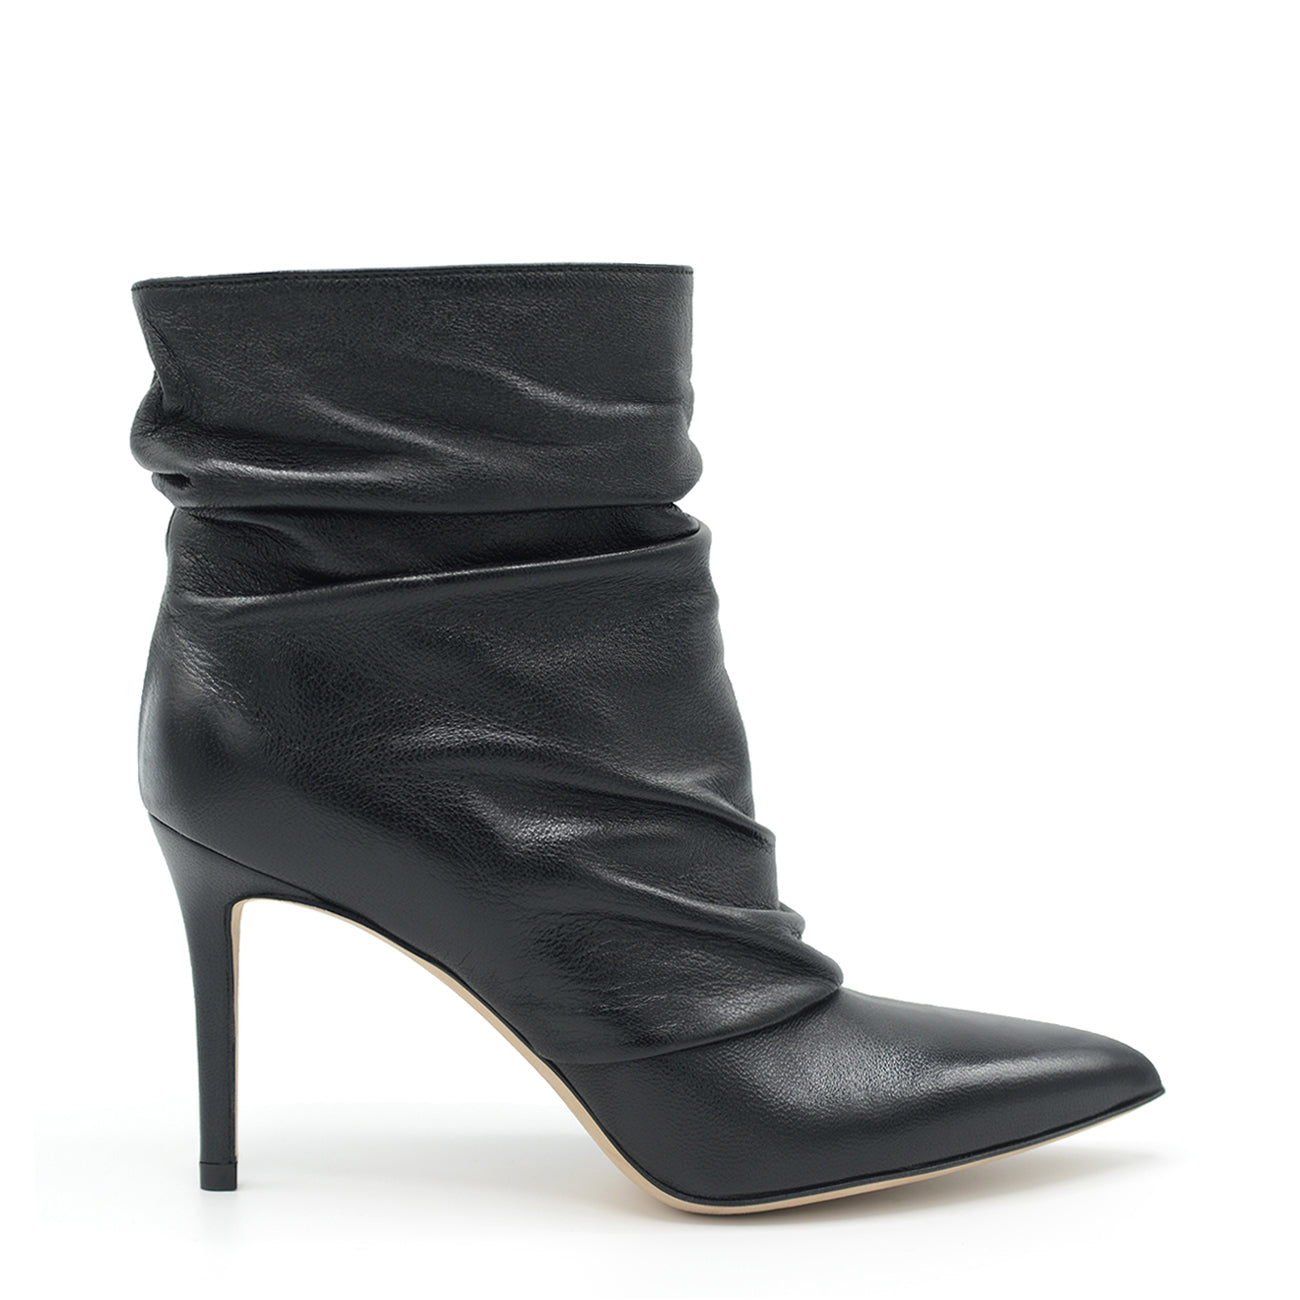 Dayana. <br> Black nappa leather ankle boots